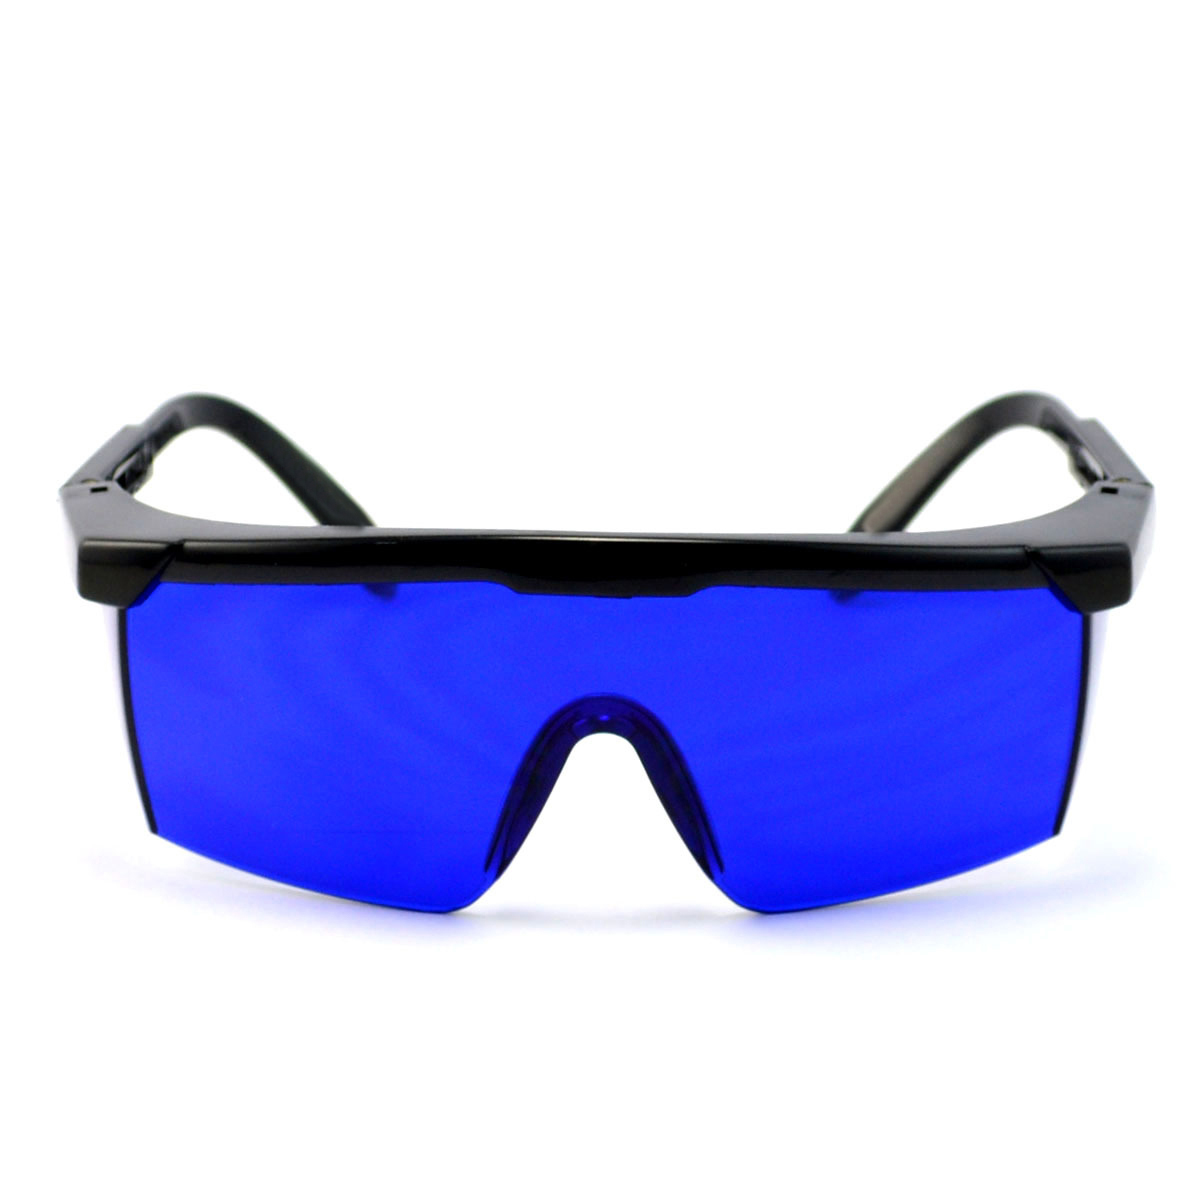 NEW Golf Ball for Easy Ball Detection Finder Glasses Blue Professional Lenses Sport Glasses Safety Eye Protection With Box